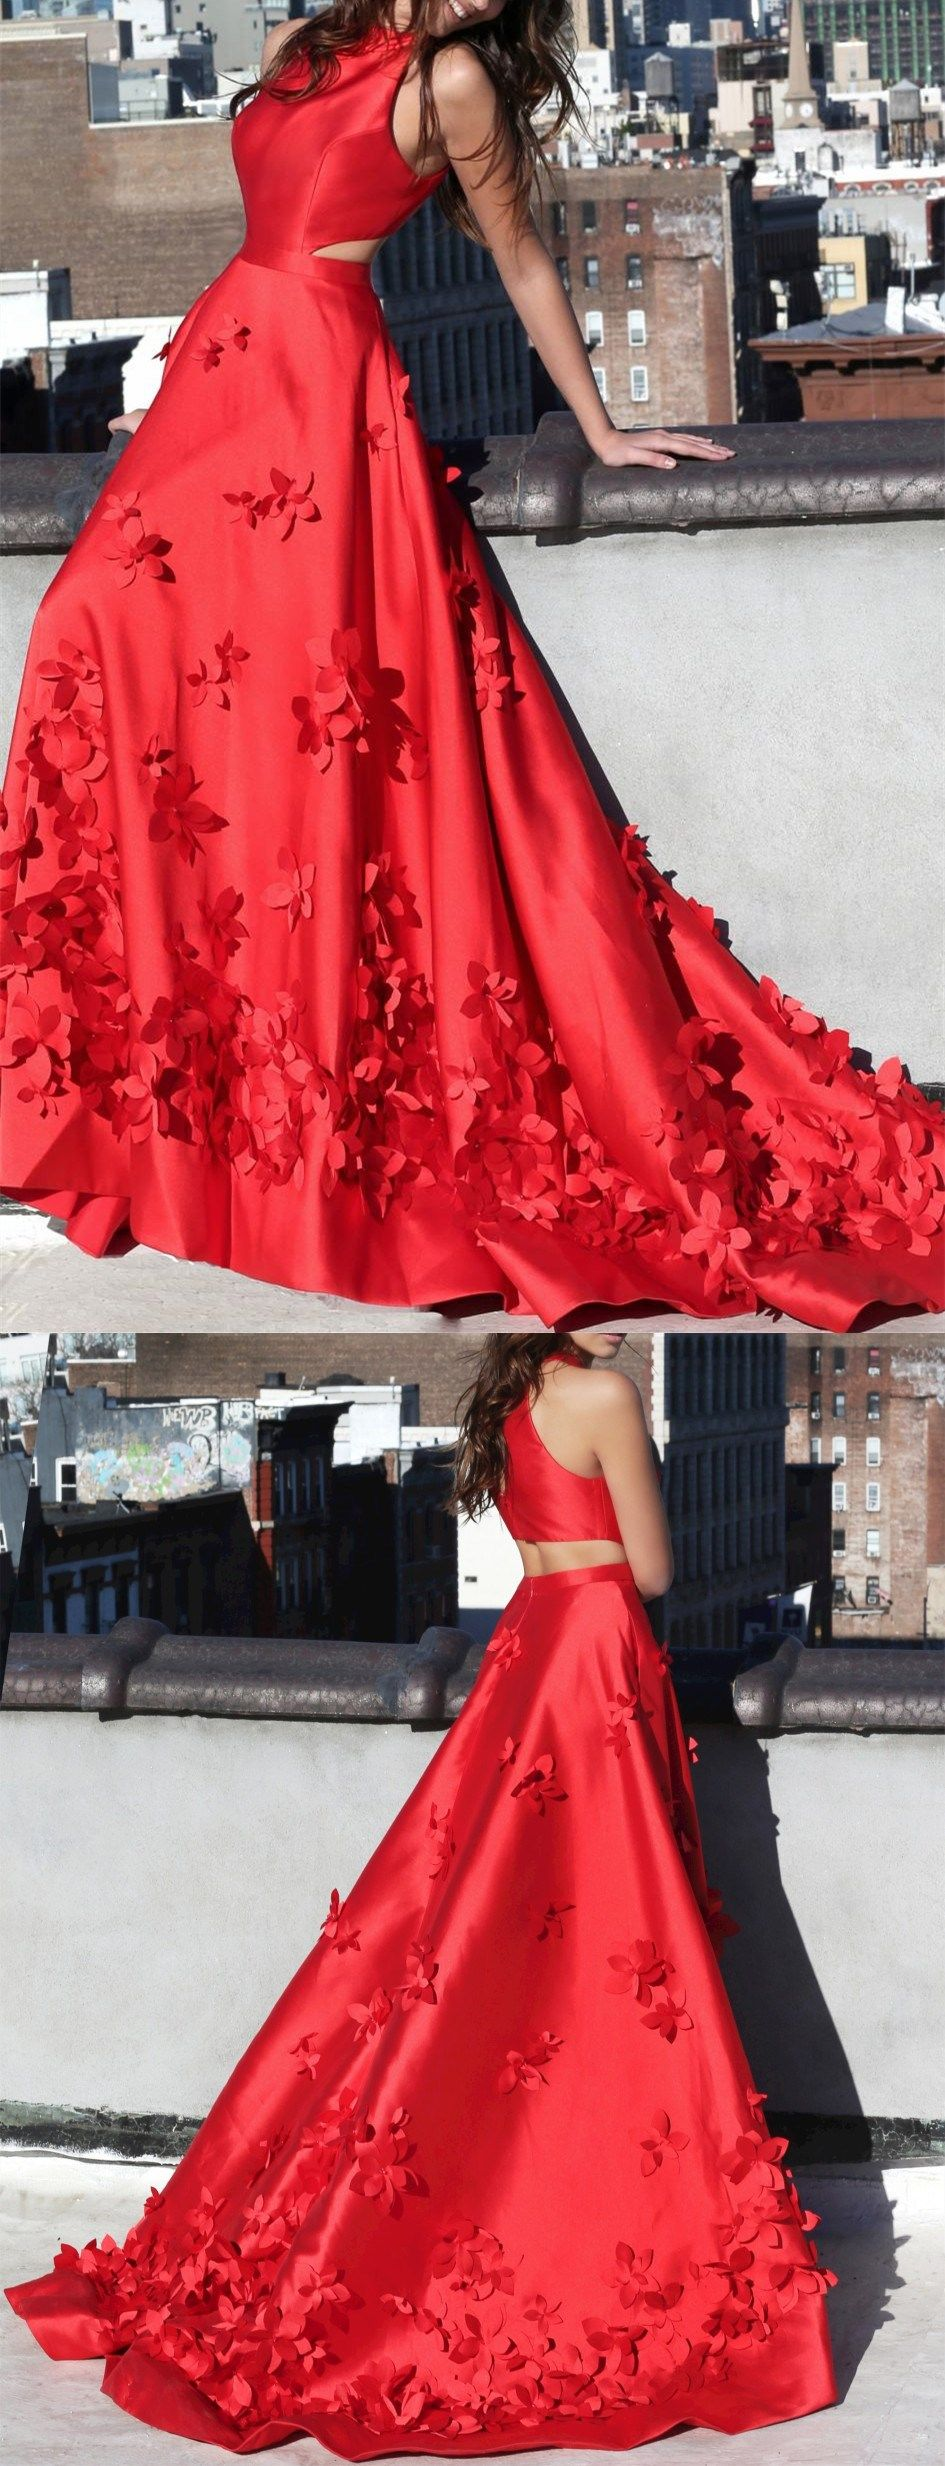 Red prom dresses aline sweep train handmade flower long chic prom